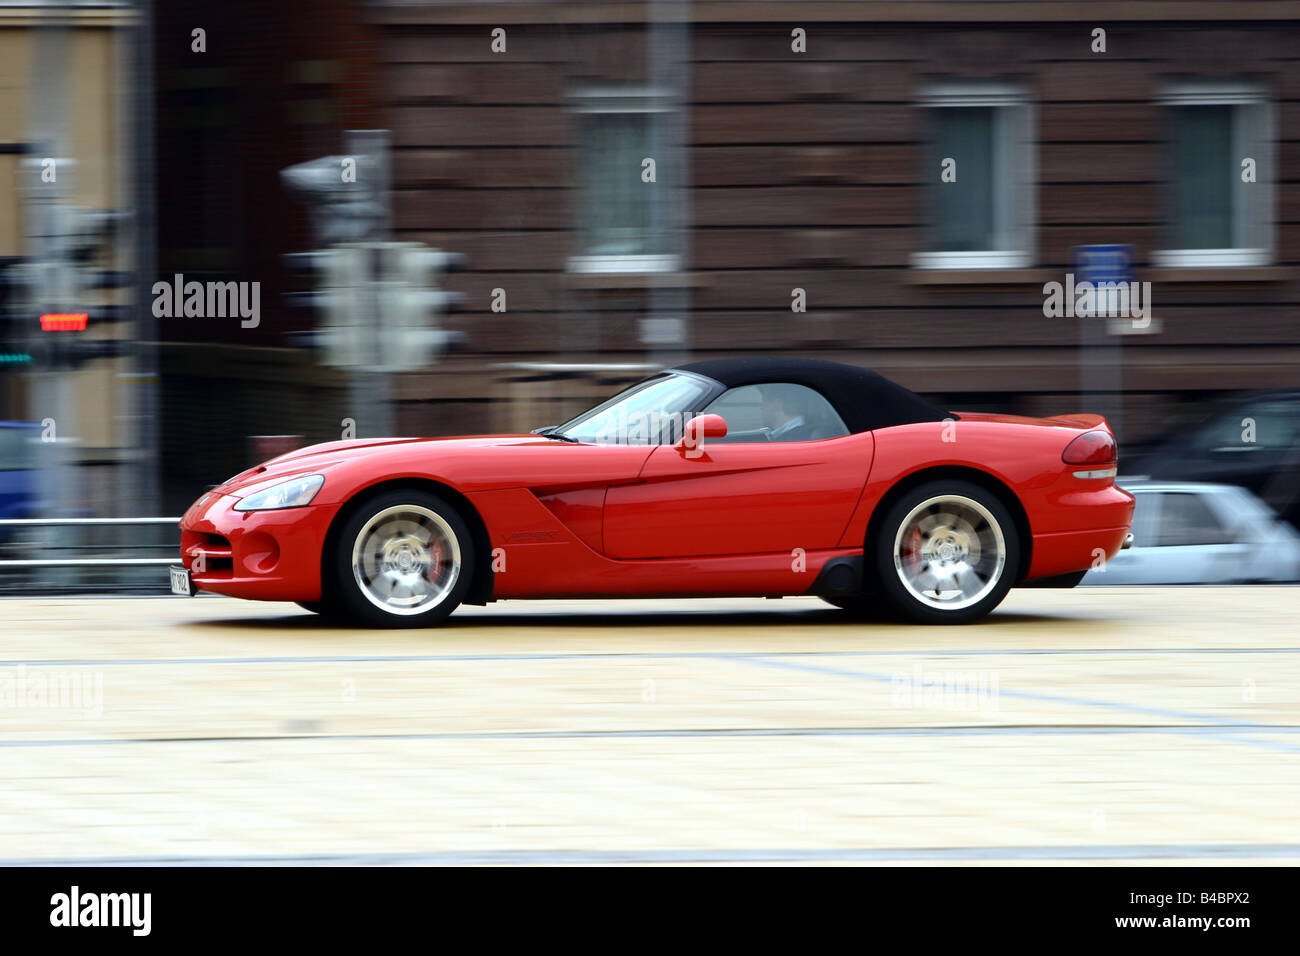 Car, Dodge Viper SRT-10, Convertible, model year 2003-, red, FGHDS, closed top, driving, side view, City - Stock Image